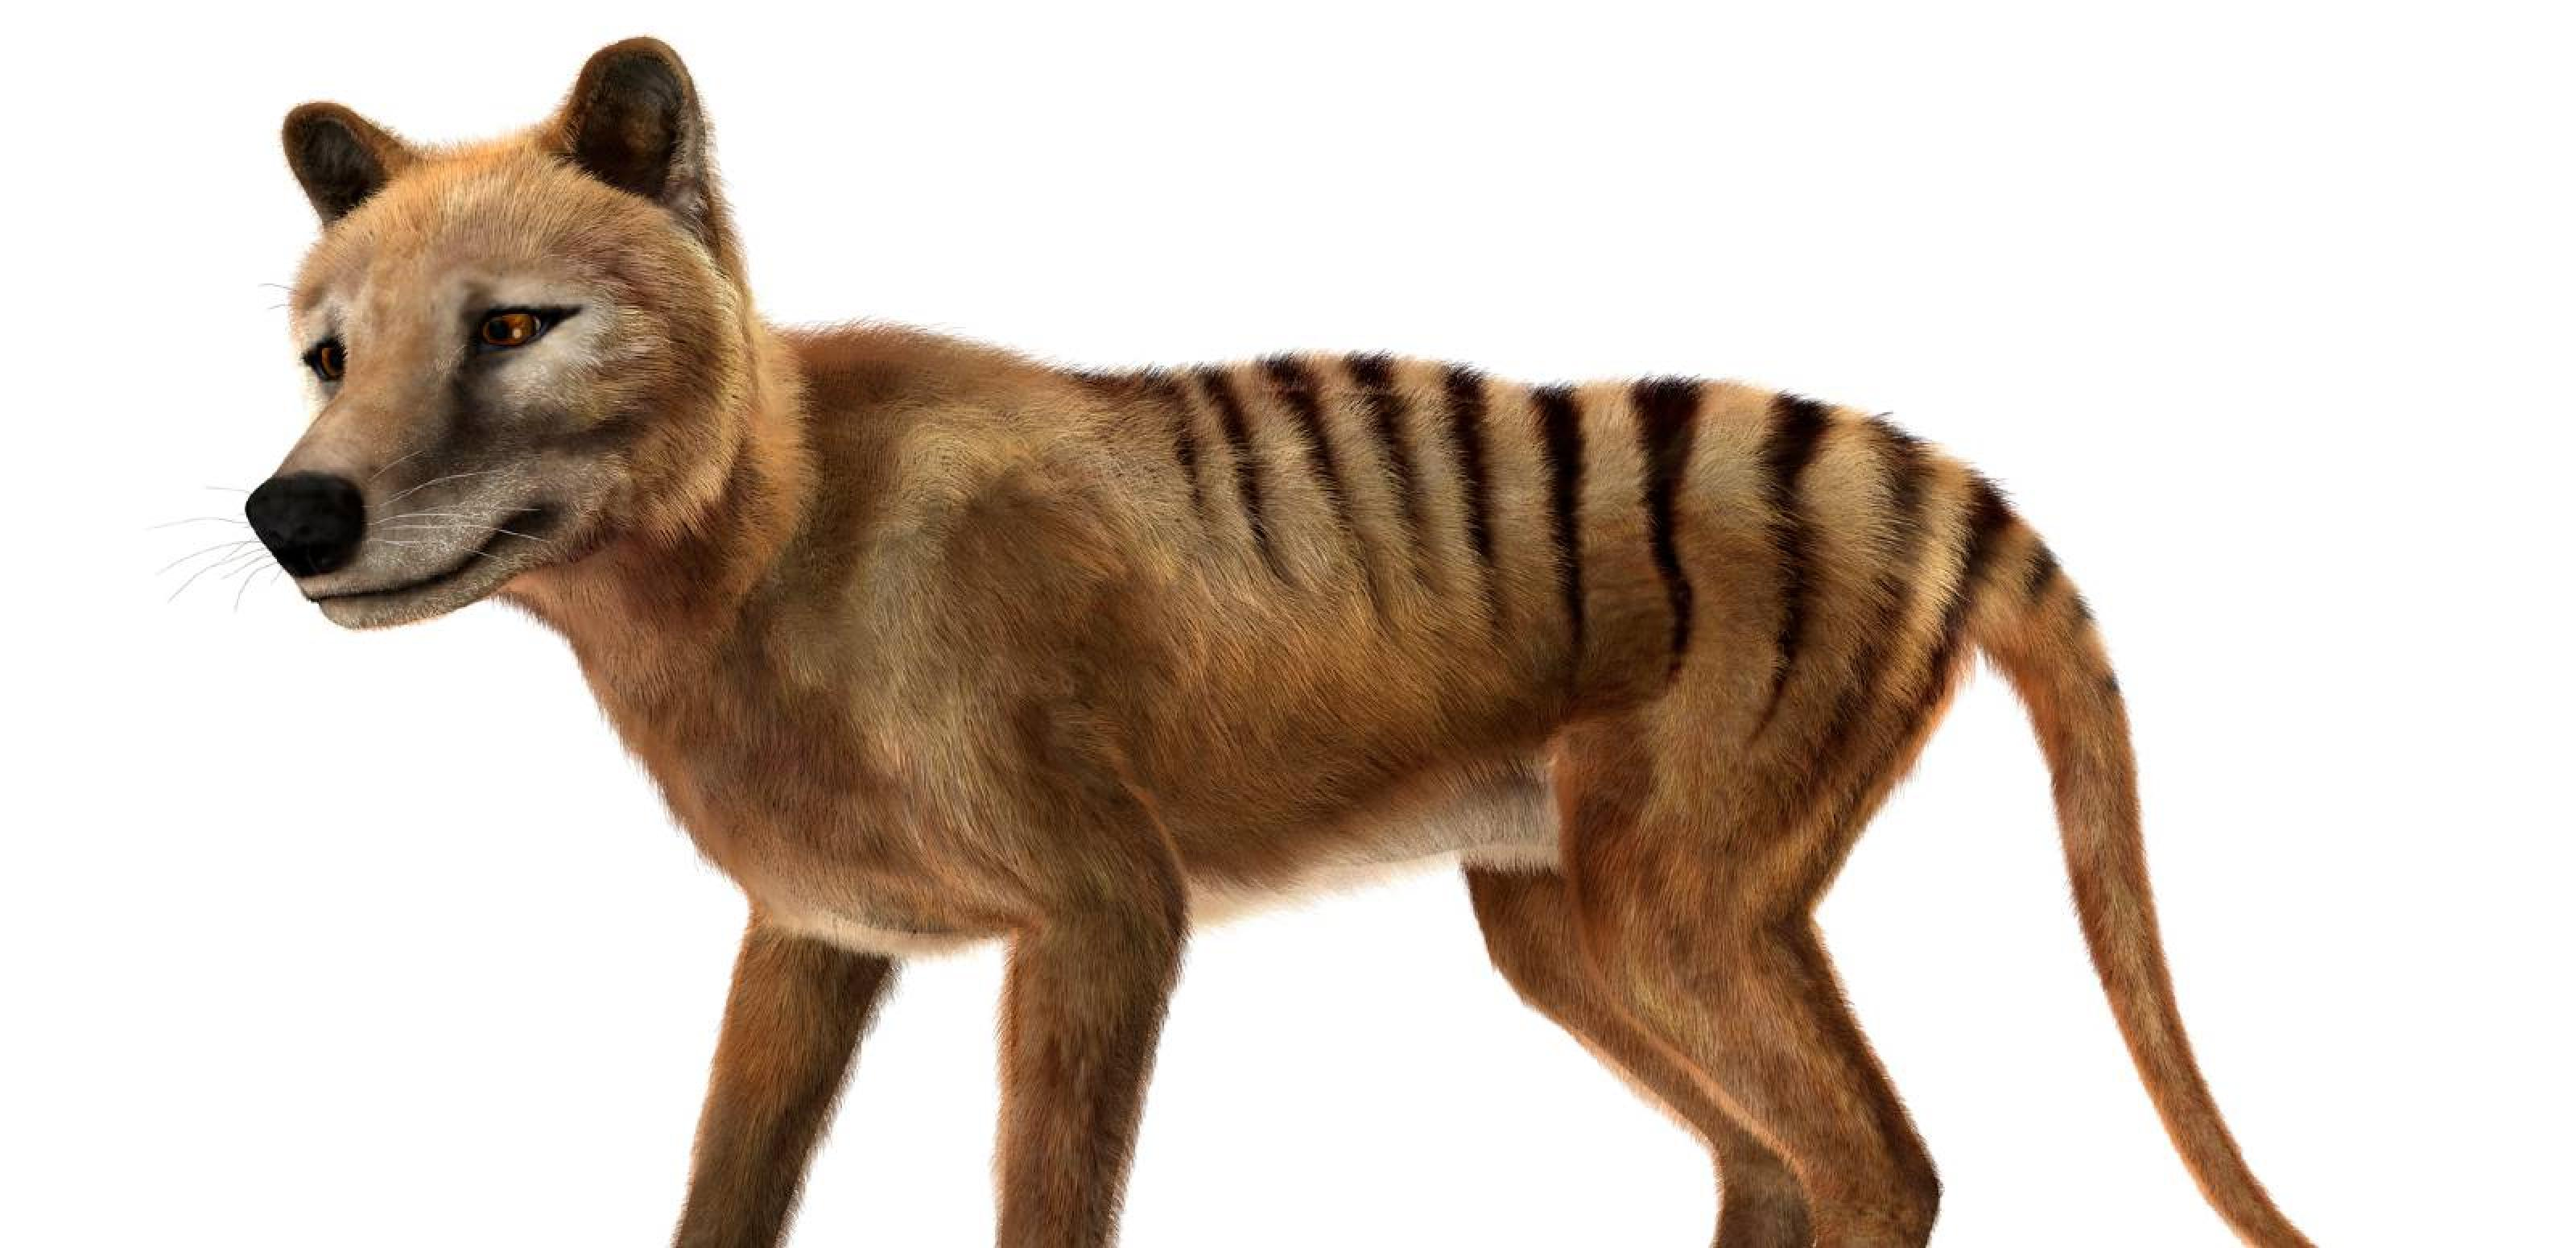 A 3D rendering of an extinct thylacine, or Tasmanian Tiger